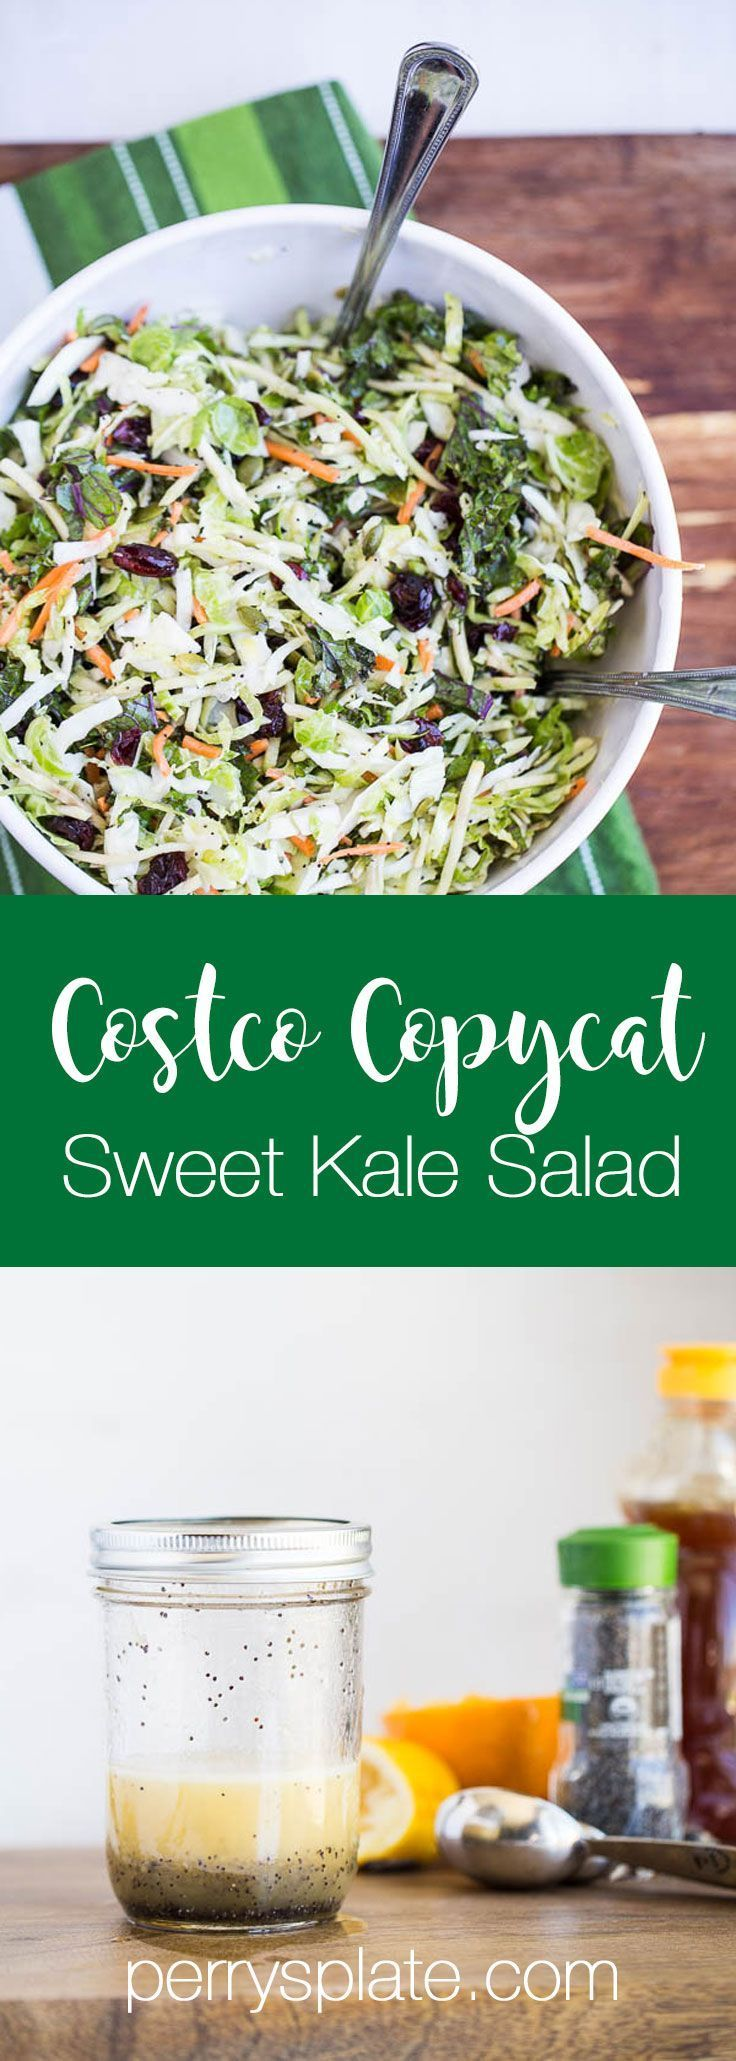 Your favorite Costco salad kit with a healthy, soy-free dressing!   salad recipes   kale recipes   paleo recipes   perrysplate.com